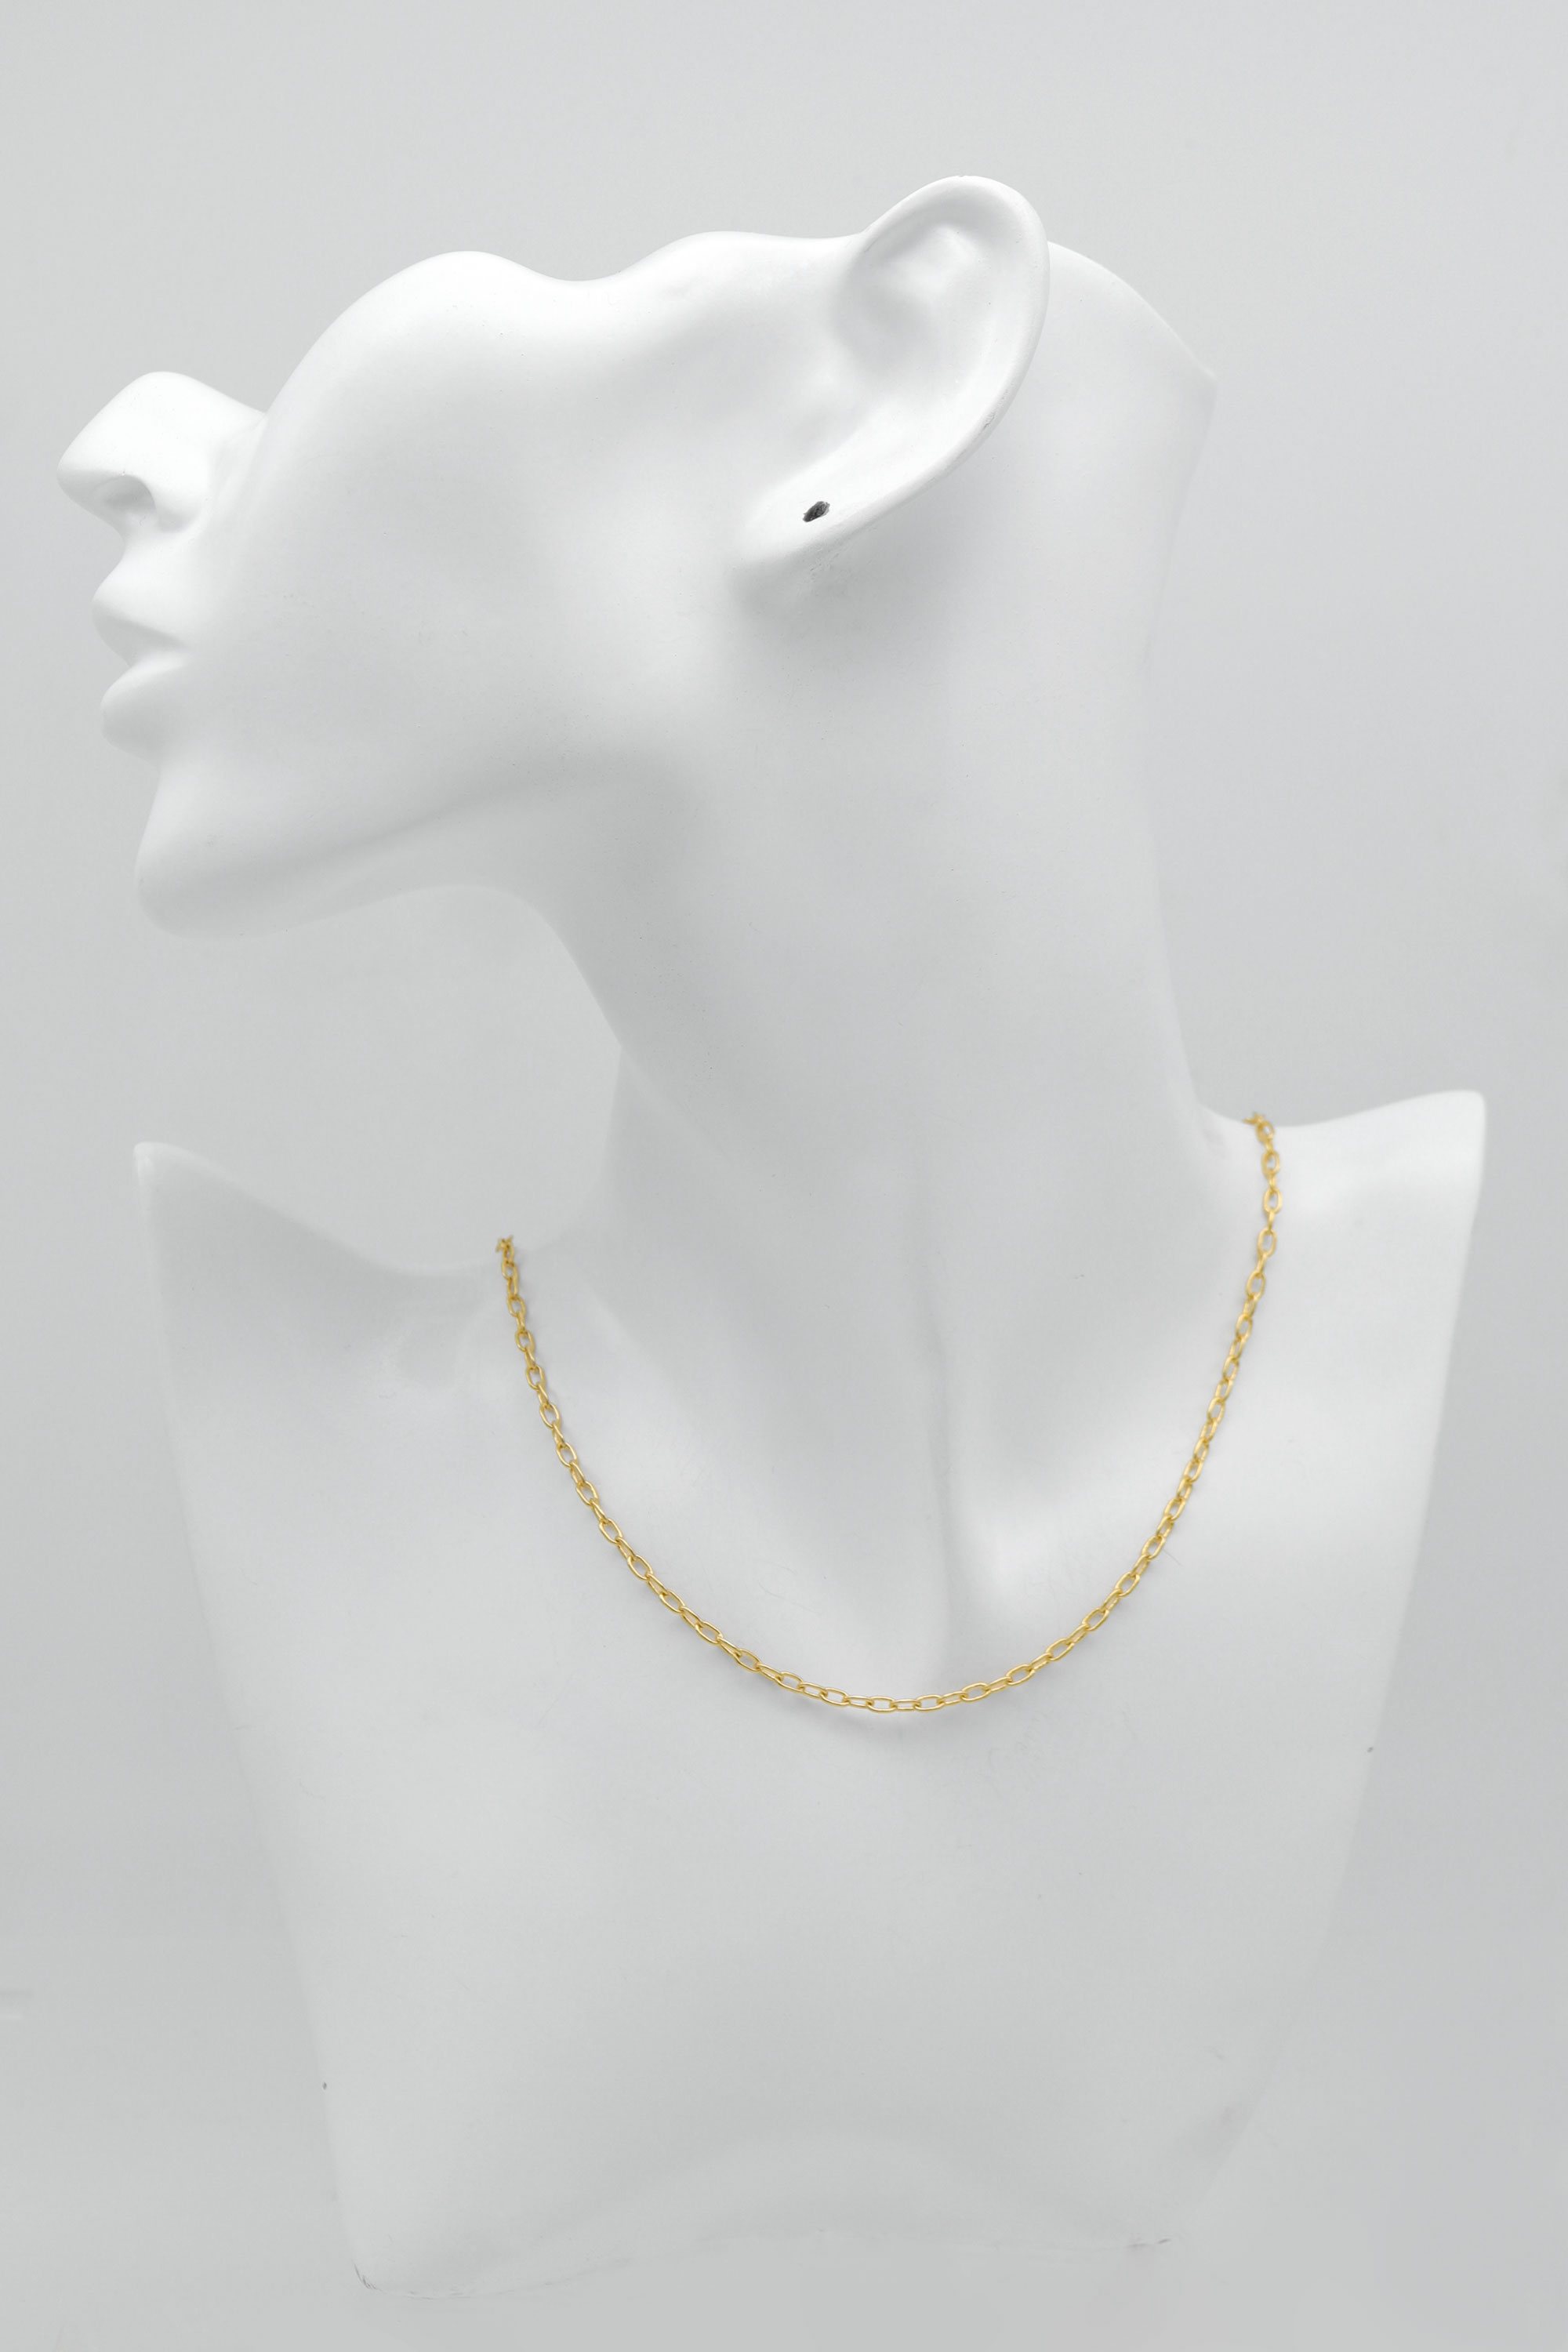 Oval link chain necklace for charm, N4506-G1